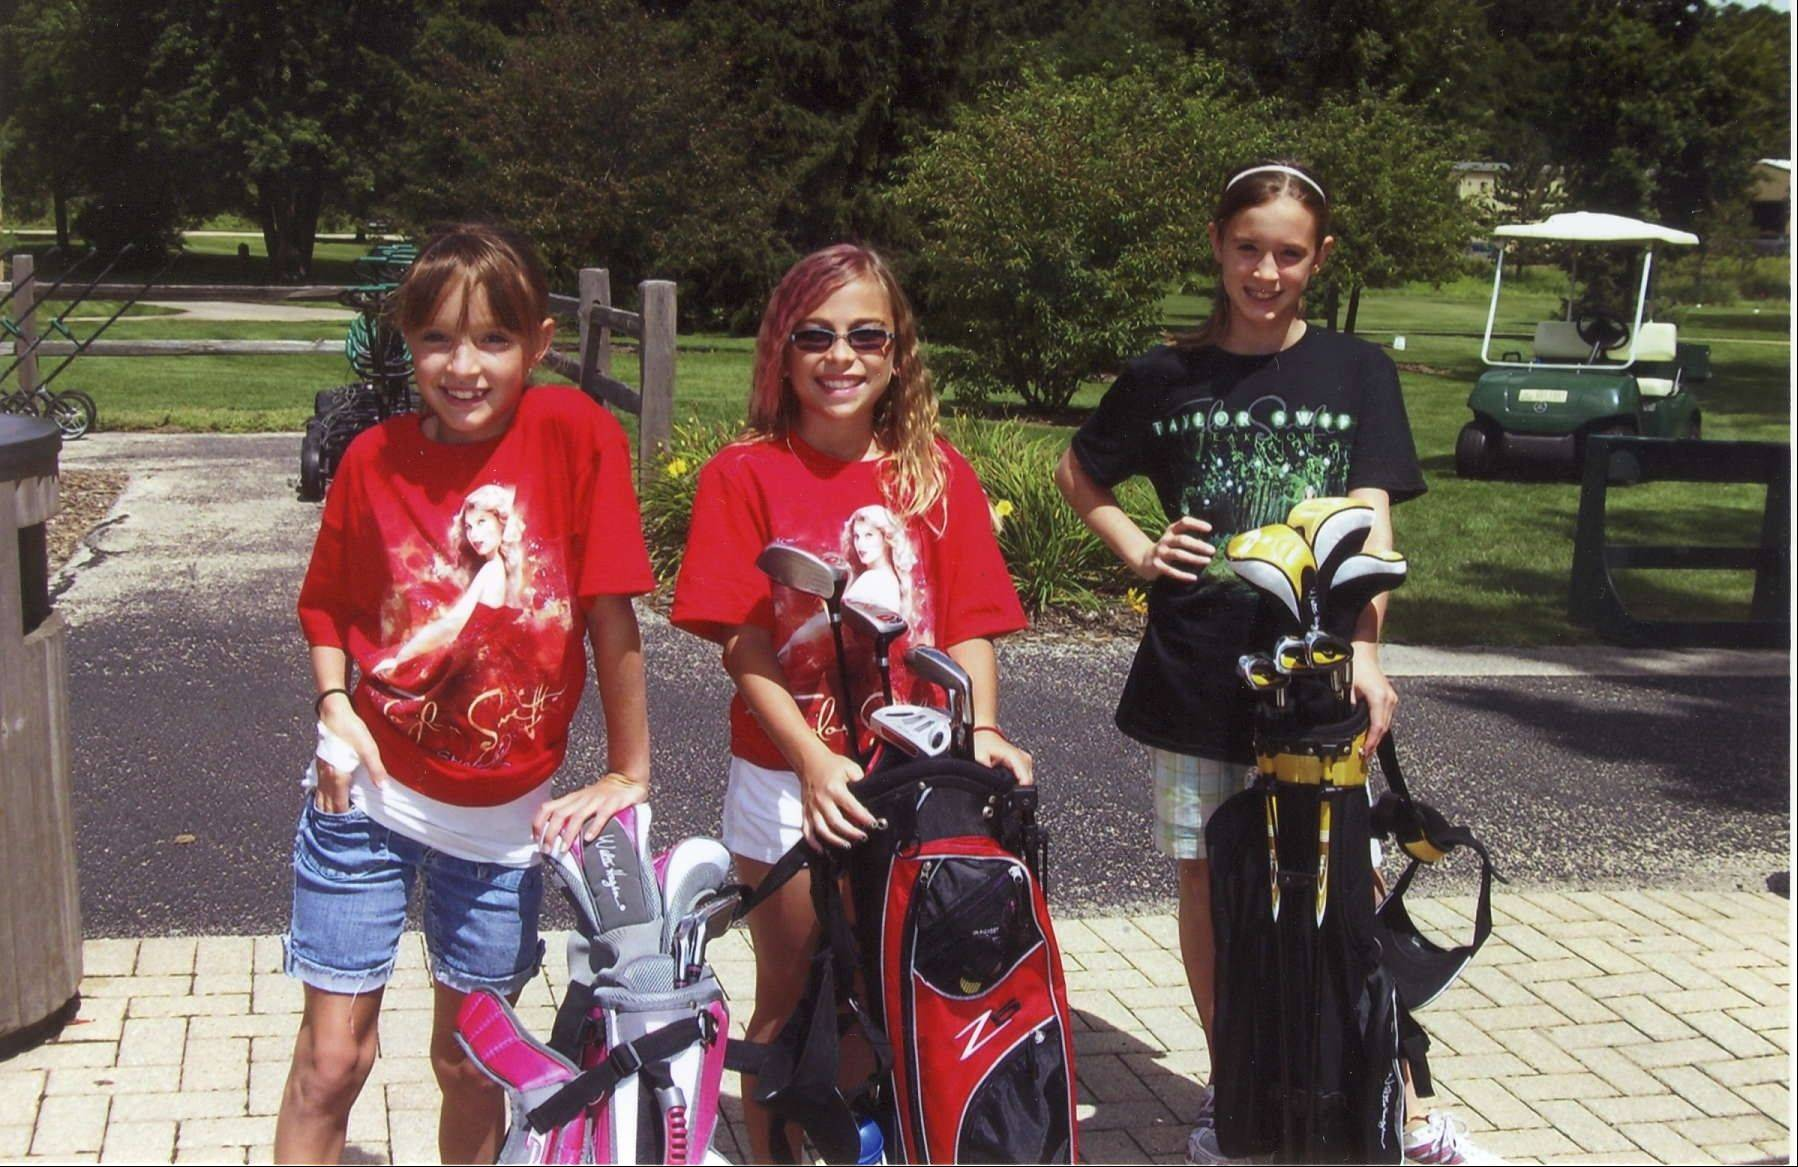 Members of the Junior Golf League enjoy a day out on the course at Apple Orchard.